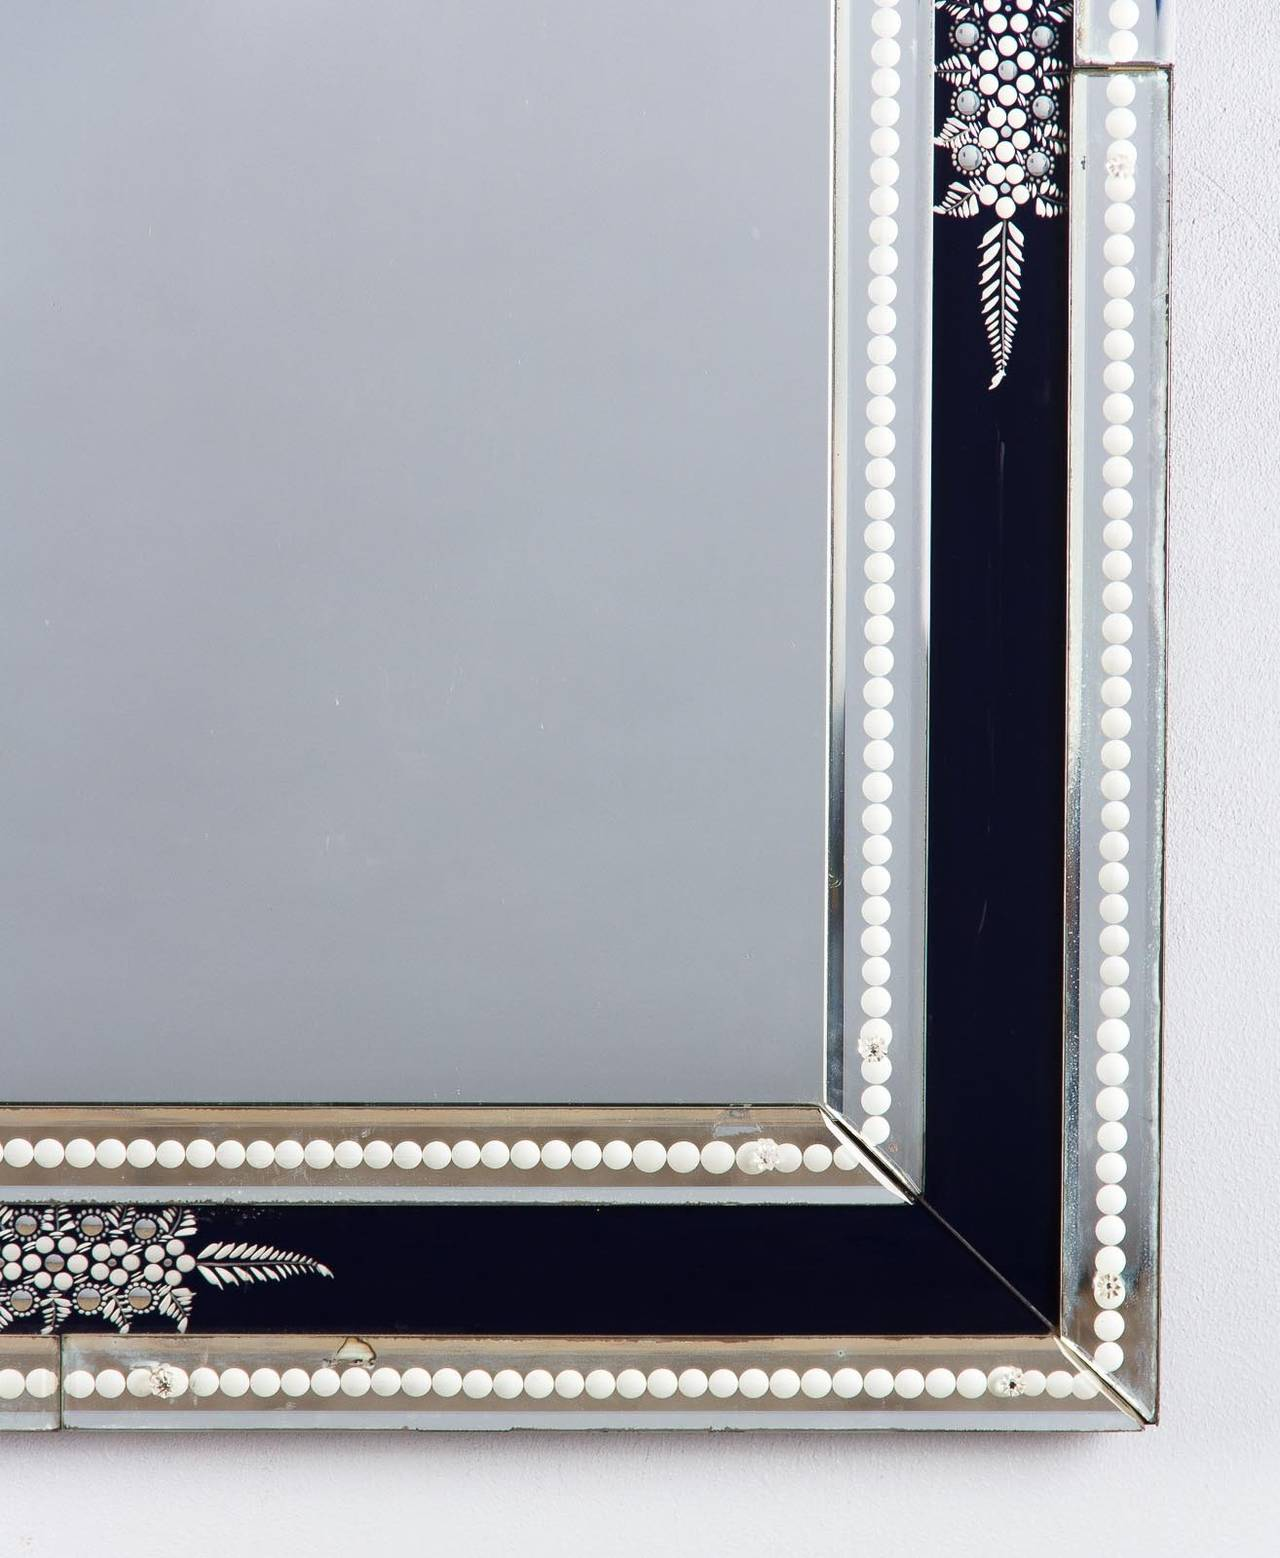 1960s venetian glass mirror with black accents for sale at for Black venetian mirror